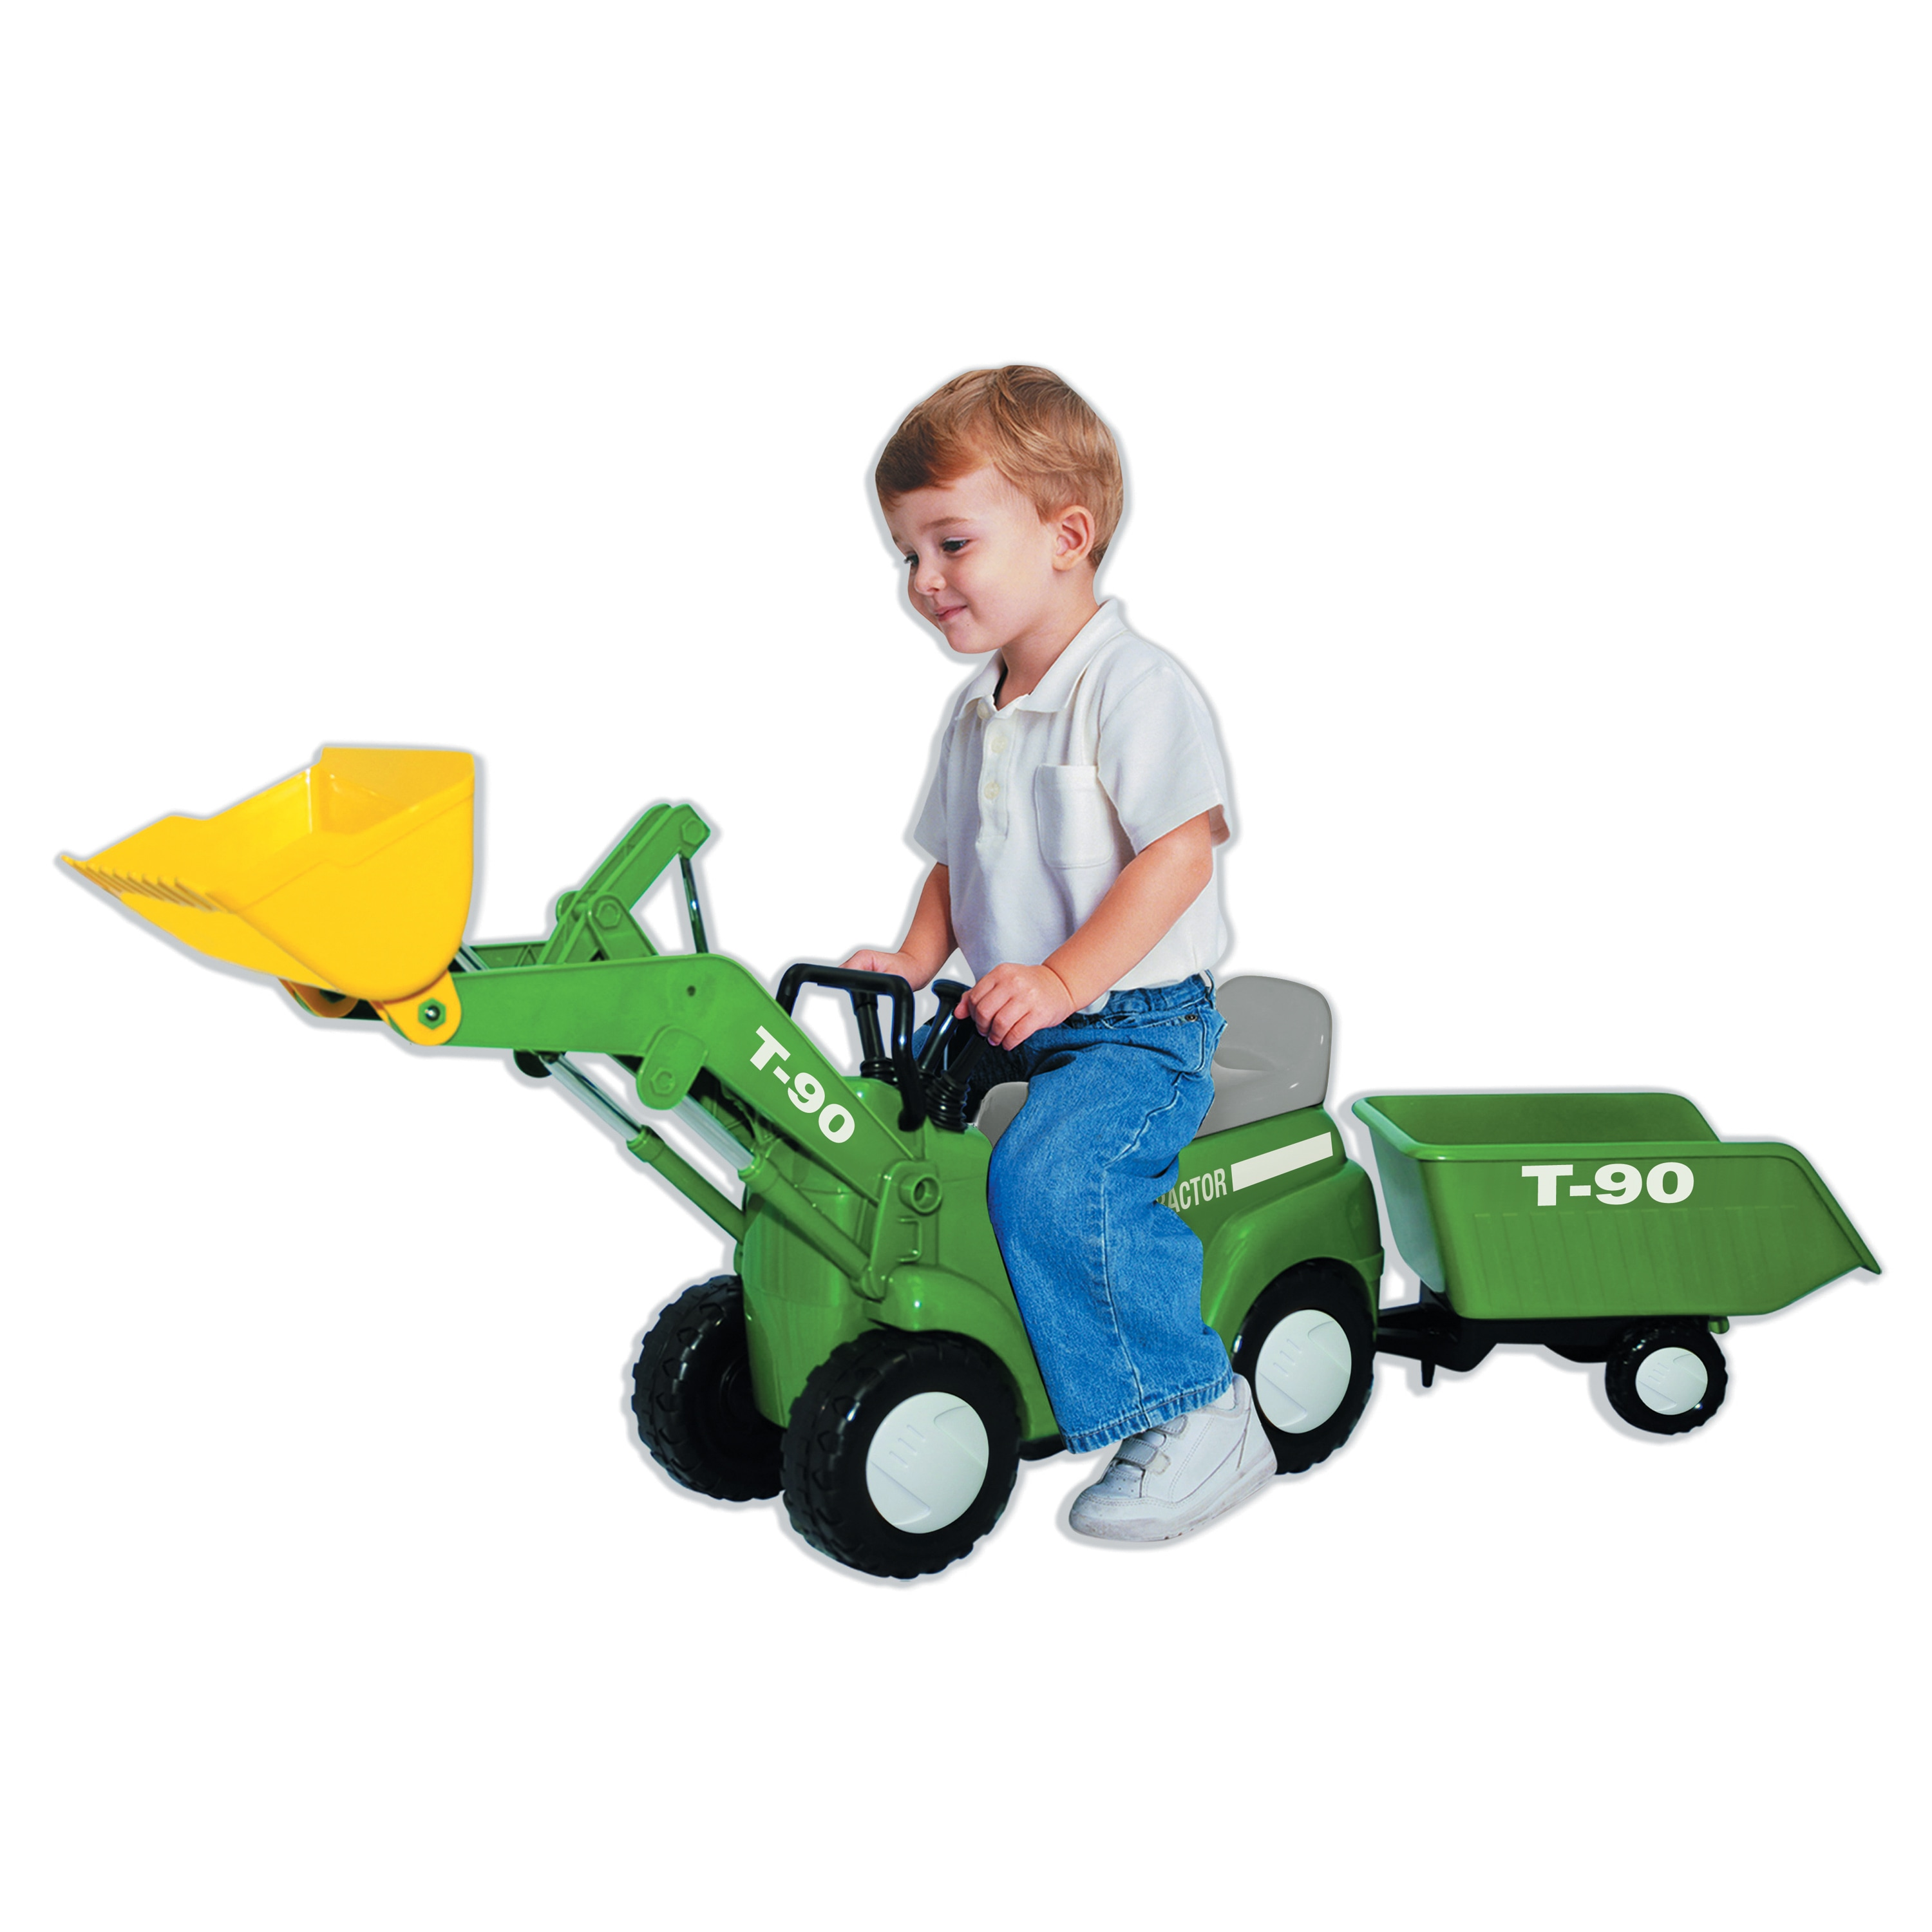 Ball Skyteam Technology Farm Tractor with Big Scoop and T...